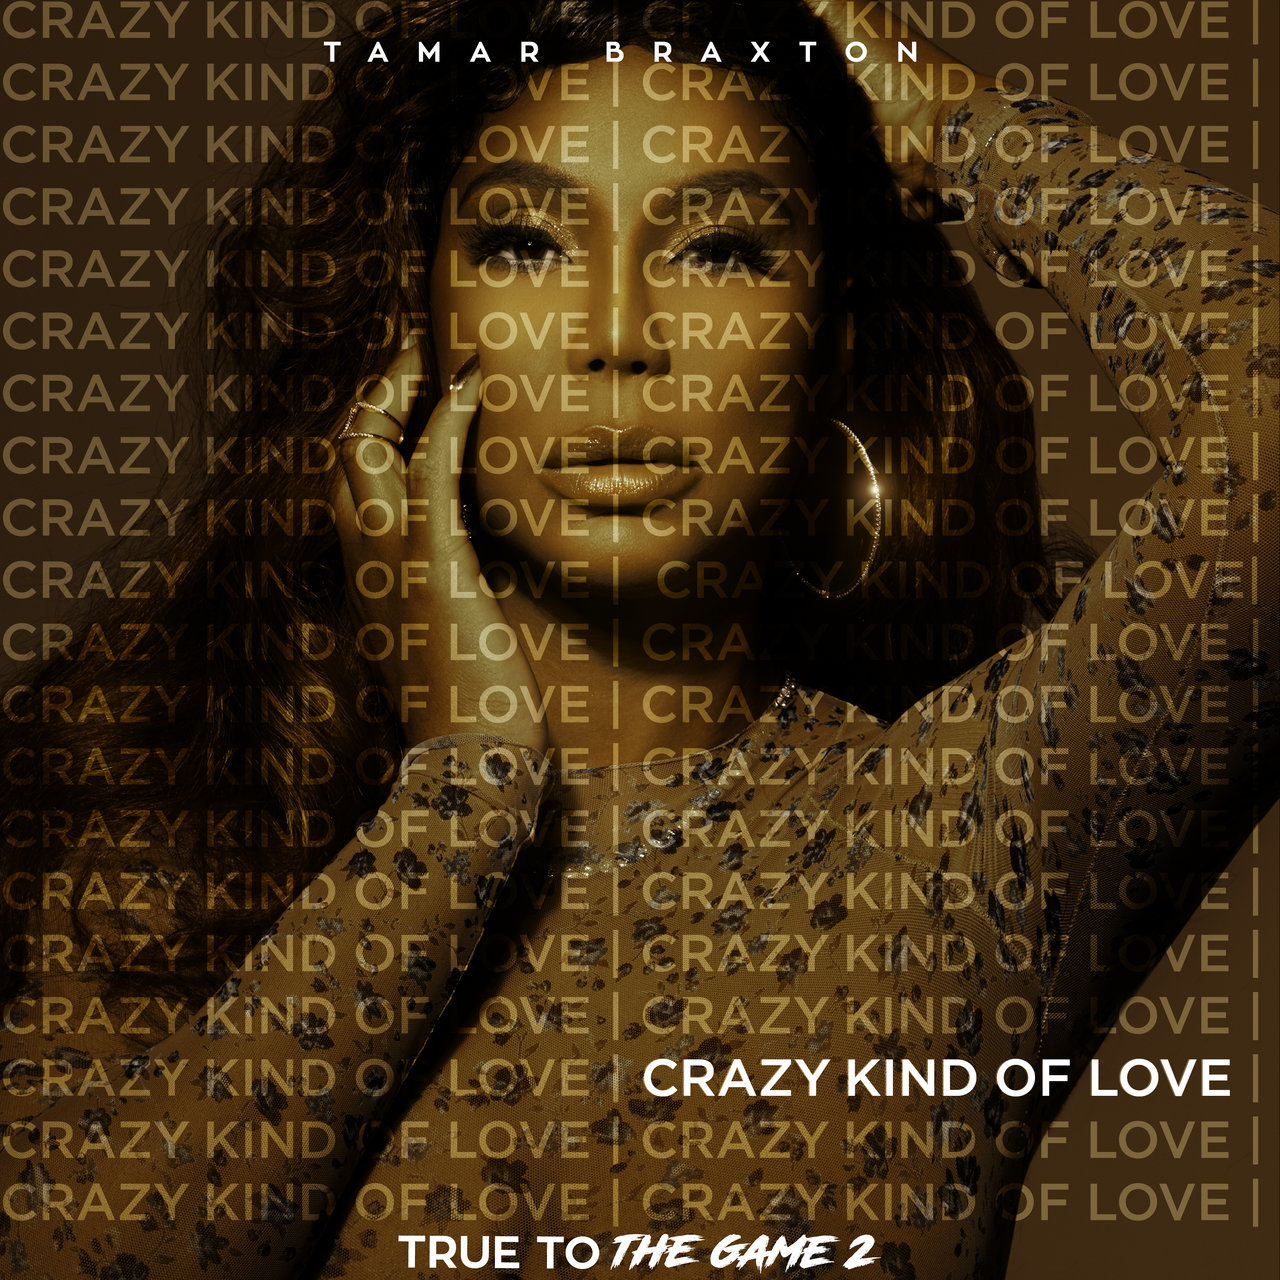 Tamar Braxton – Crazy Kind of Love